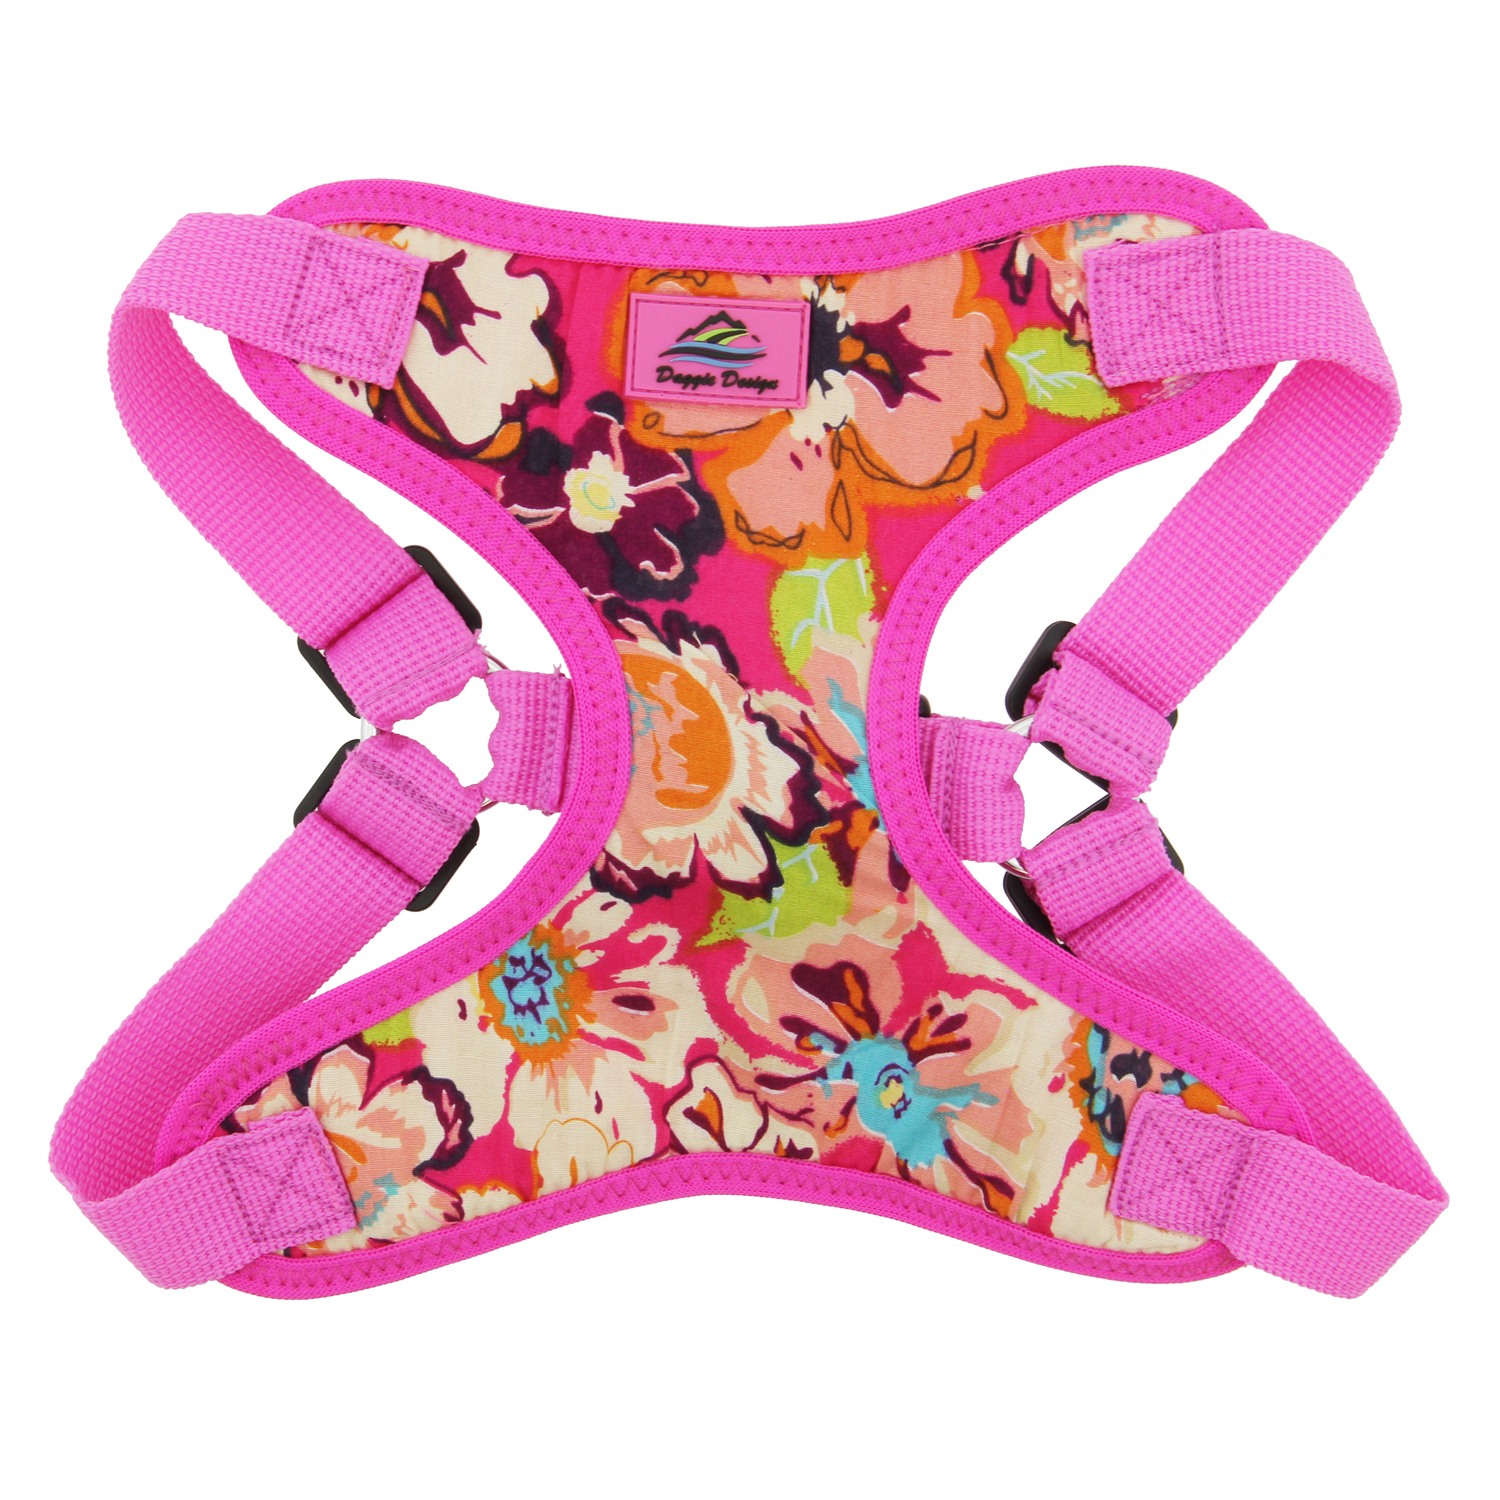 Doggie Design Wrap & Snap Choke-Free Dog Harness, Aruba Raspberry, Large